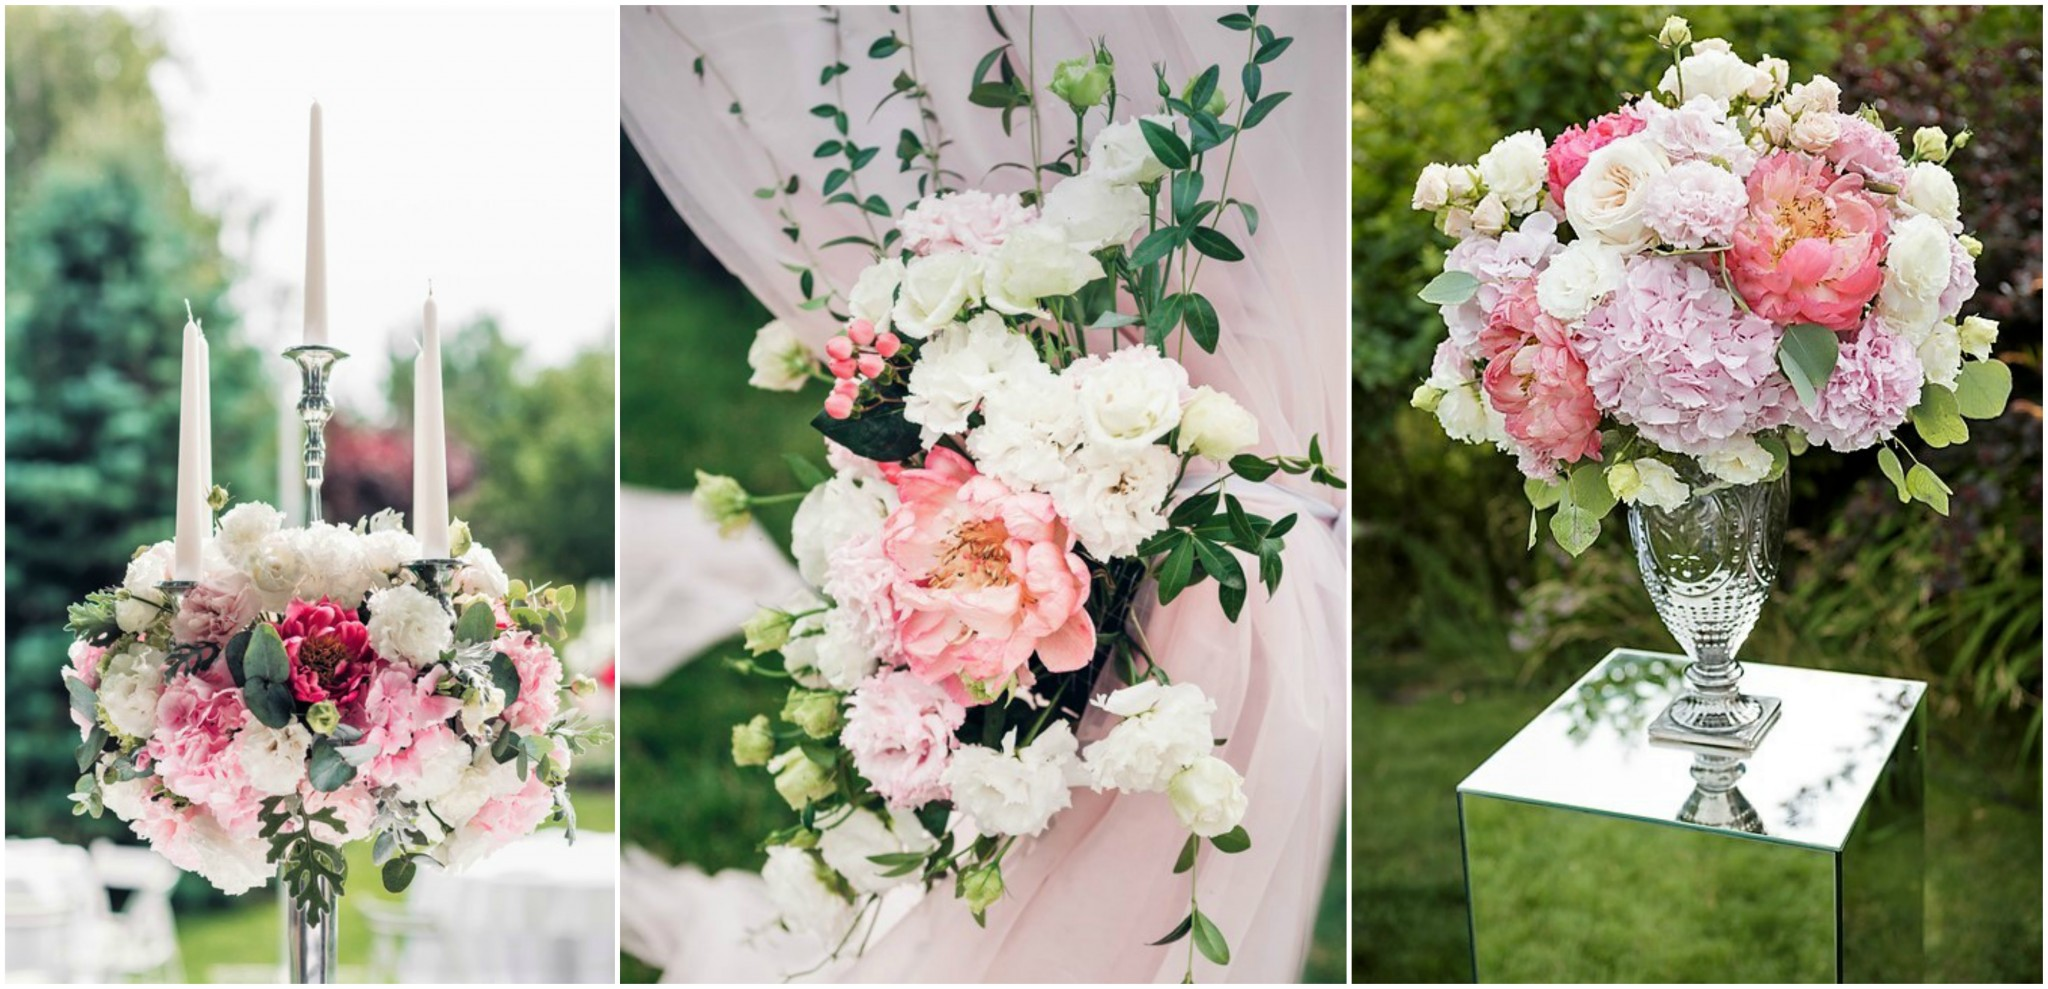 3 images of Wedding Flowers for an Auckland reception, in a vase, with candels and with tie back